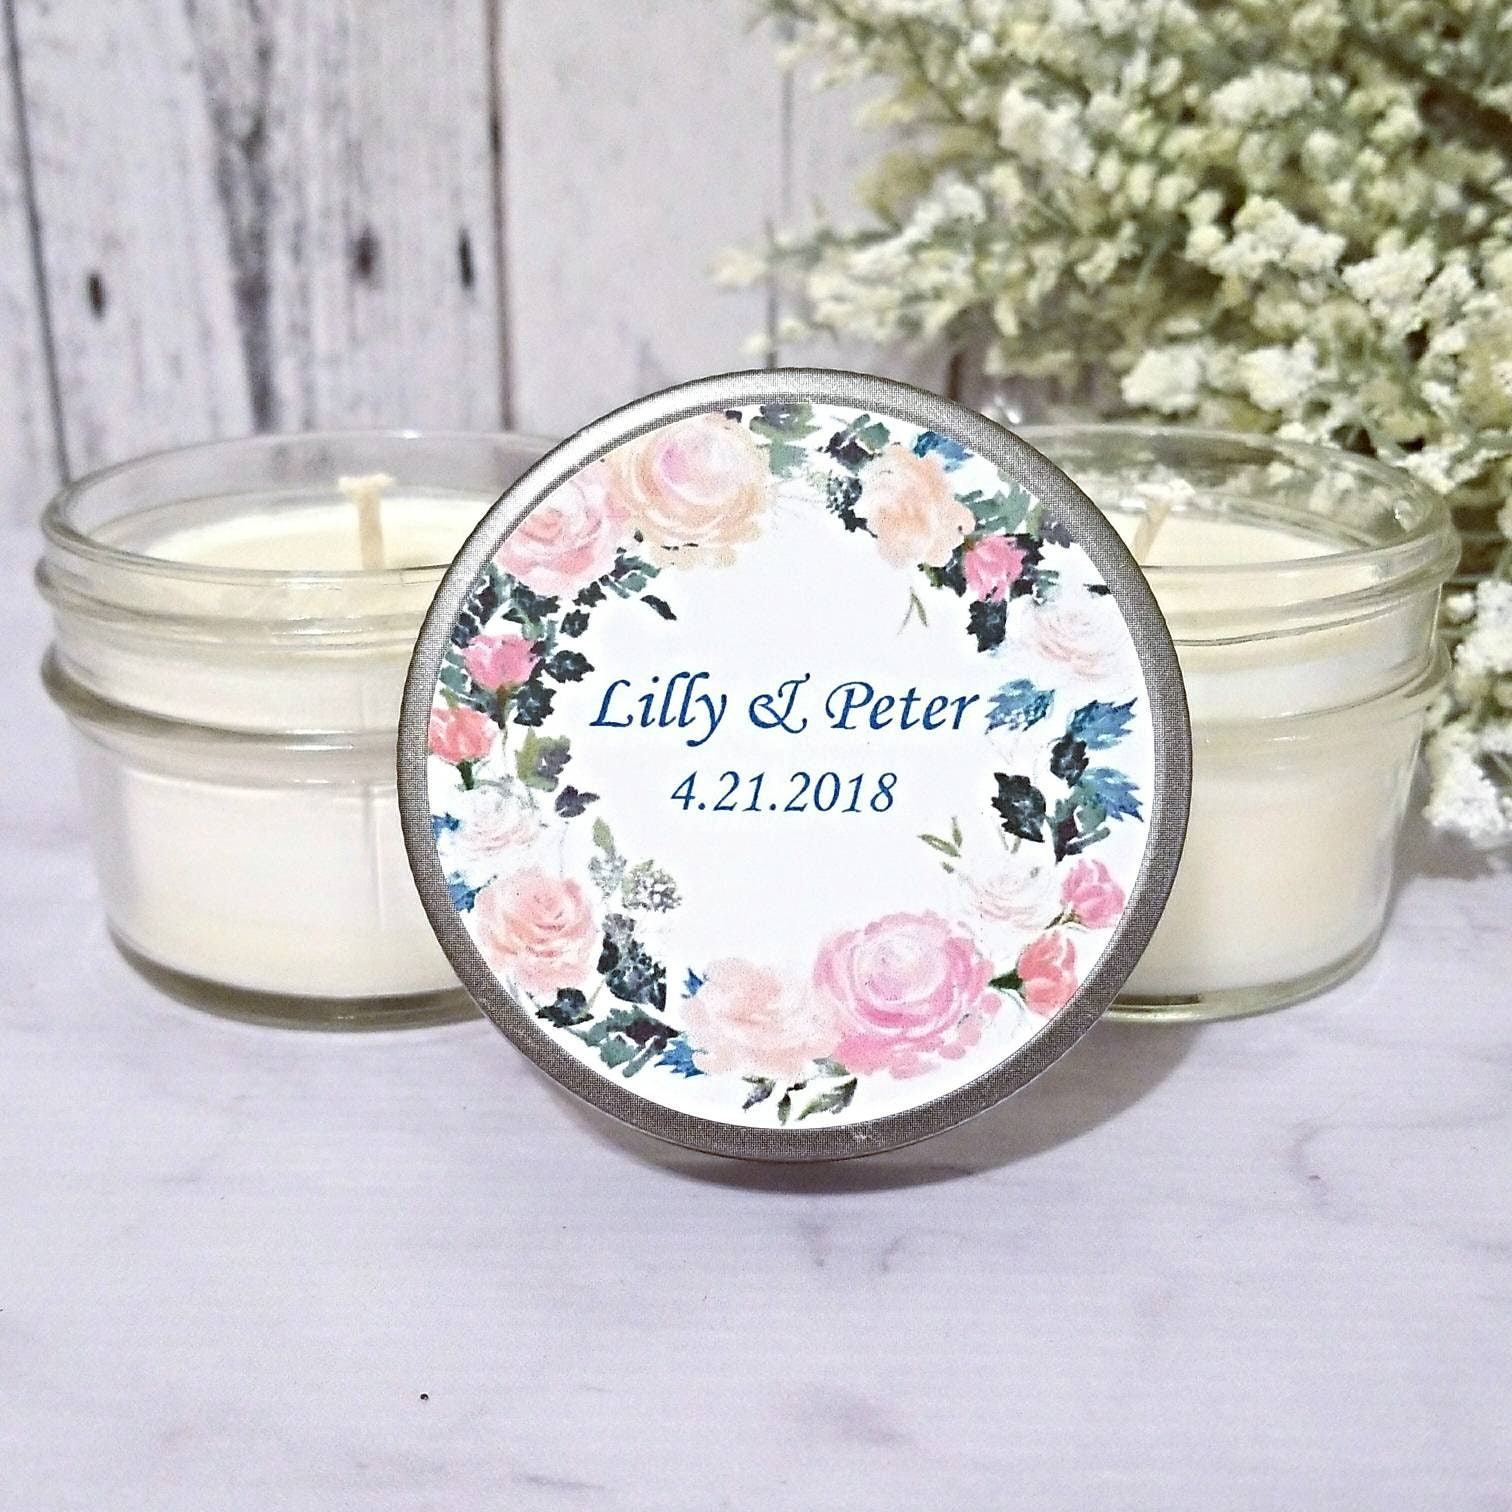 Wedding Favors Candle - Wedding Party Favors - Summer Wedding Favors ...